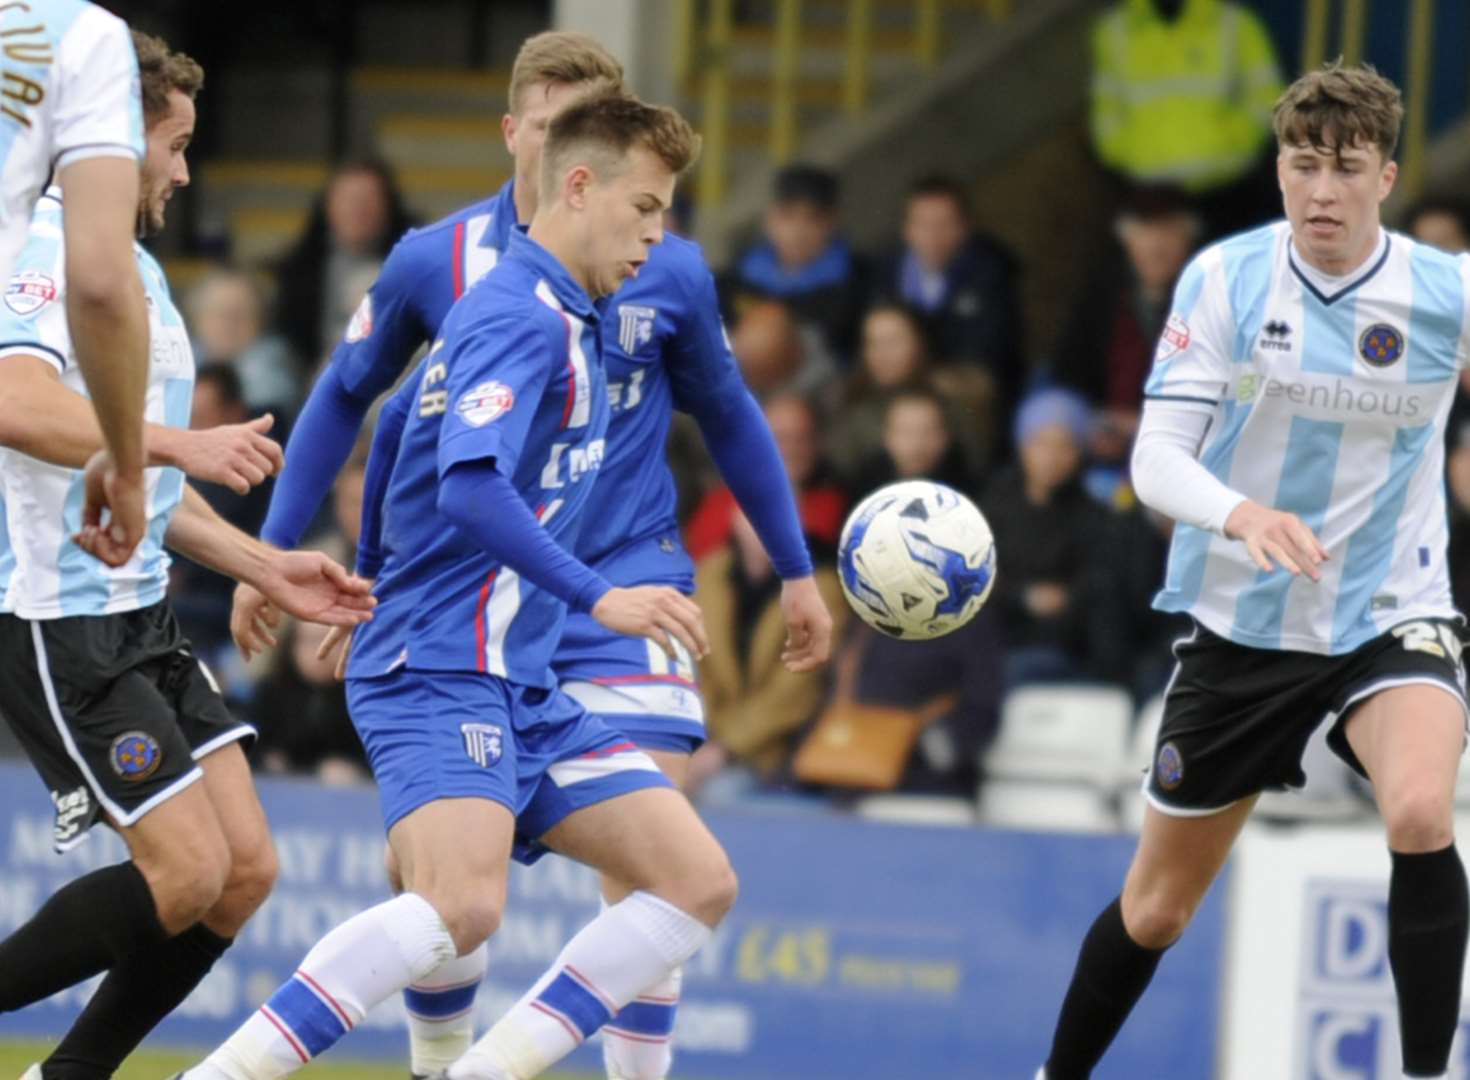 Gillingham v Shrewsbury Town - in pictures